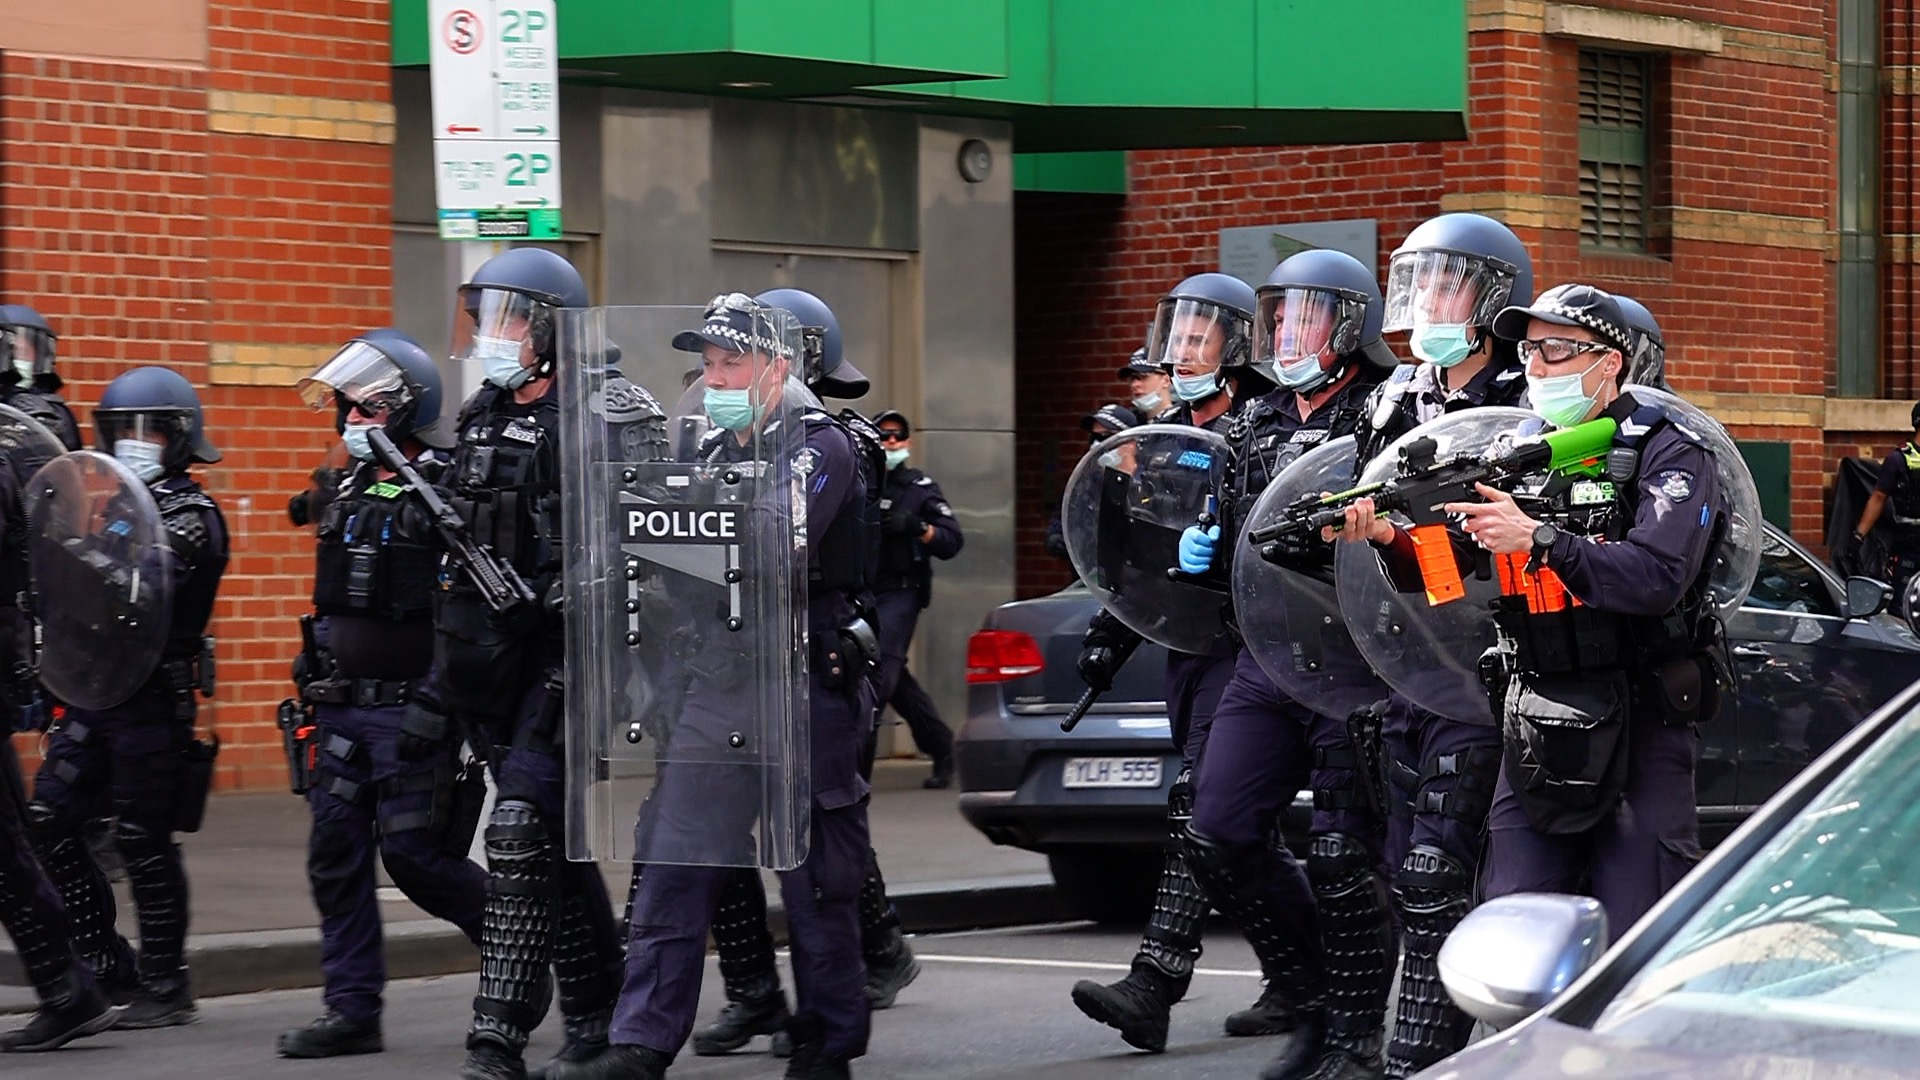 Thousands march across Australia against lockdowns as police escalate violence